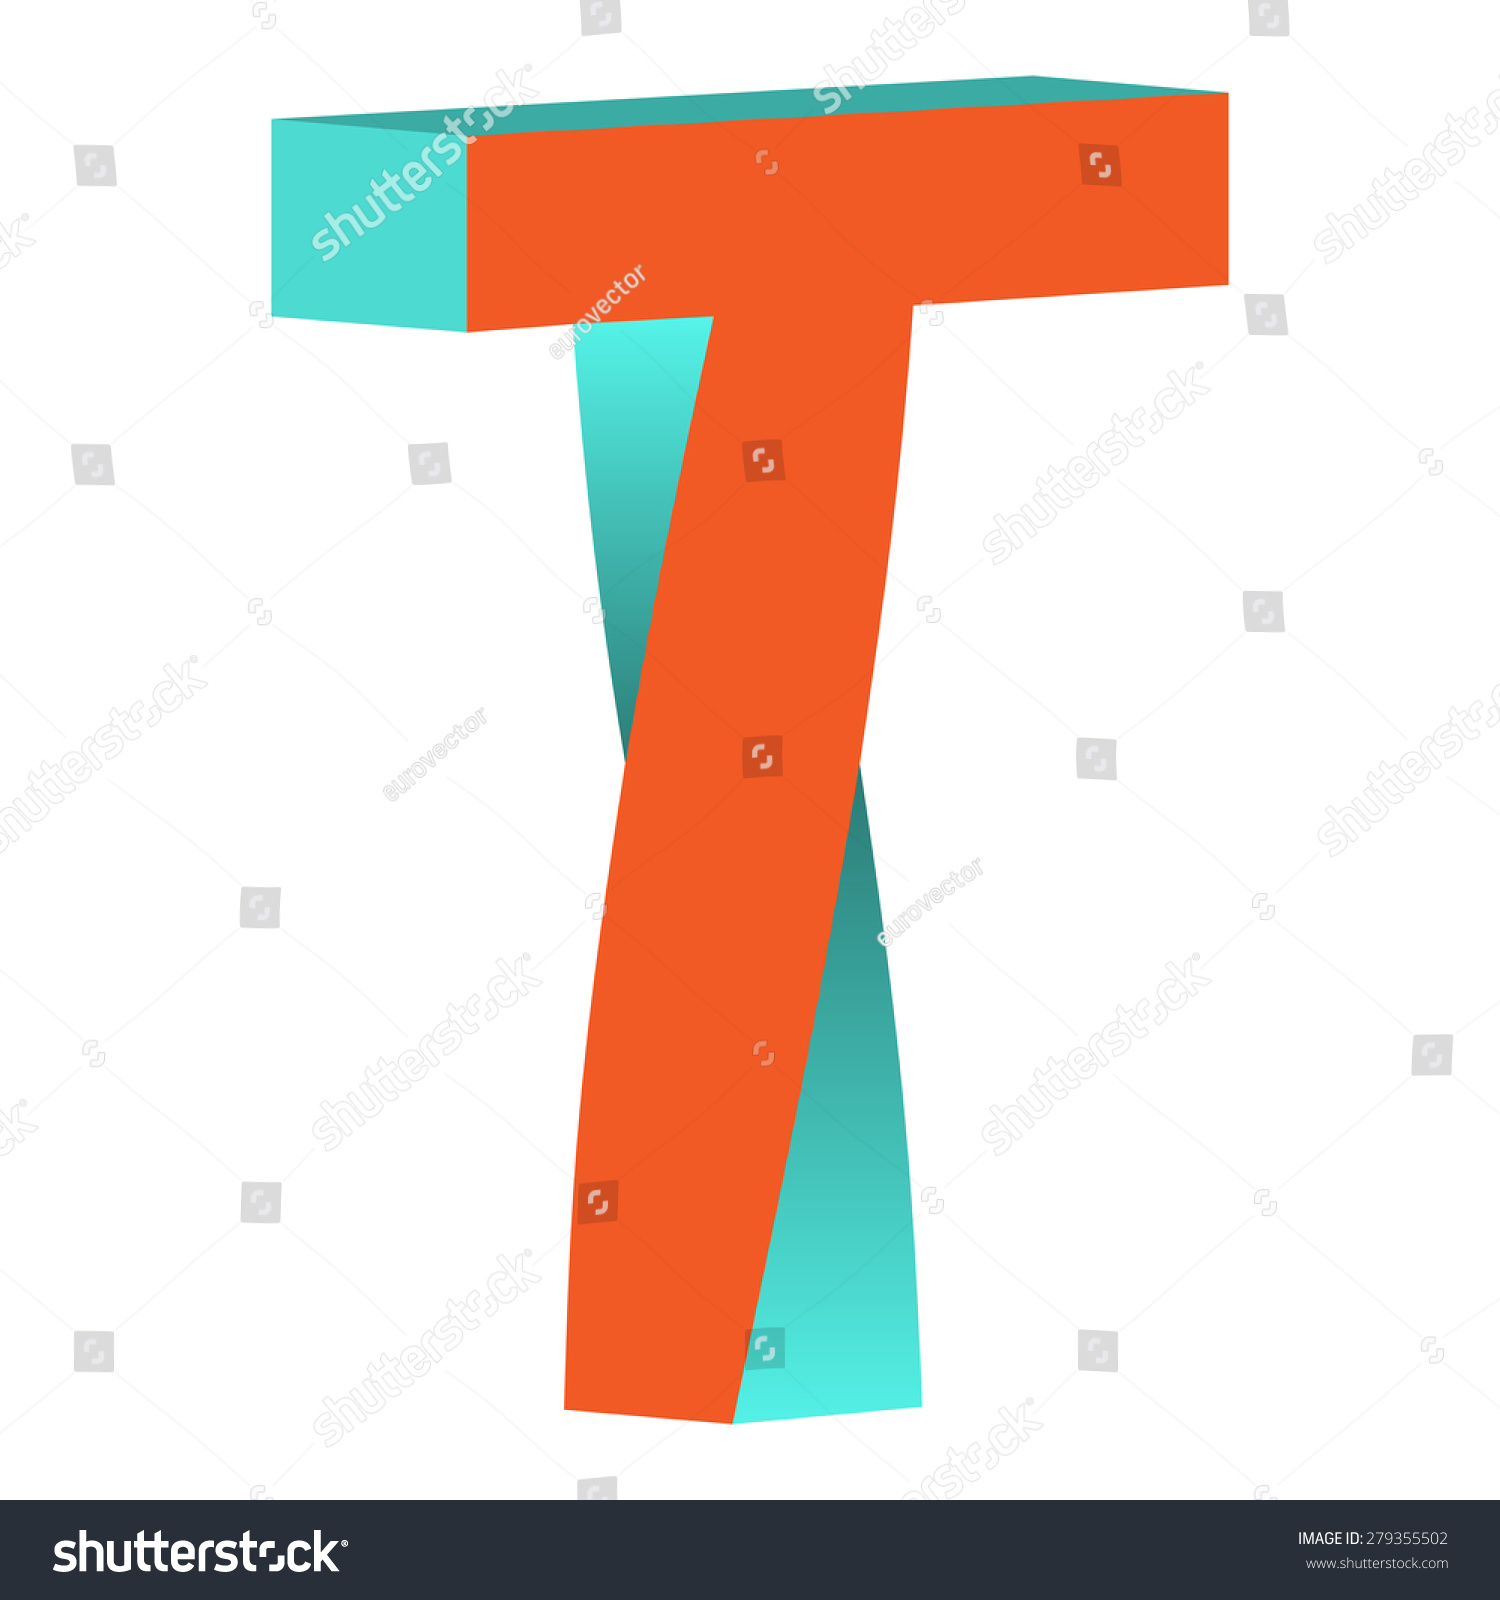 Twisted impossible letter t logo icon stock vector for Letter t decoration